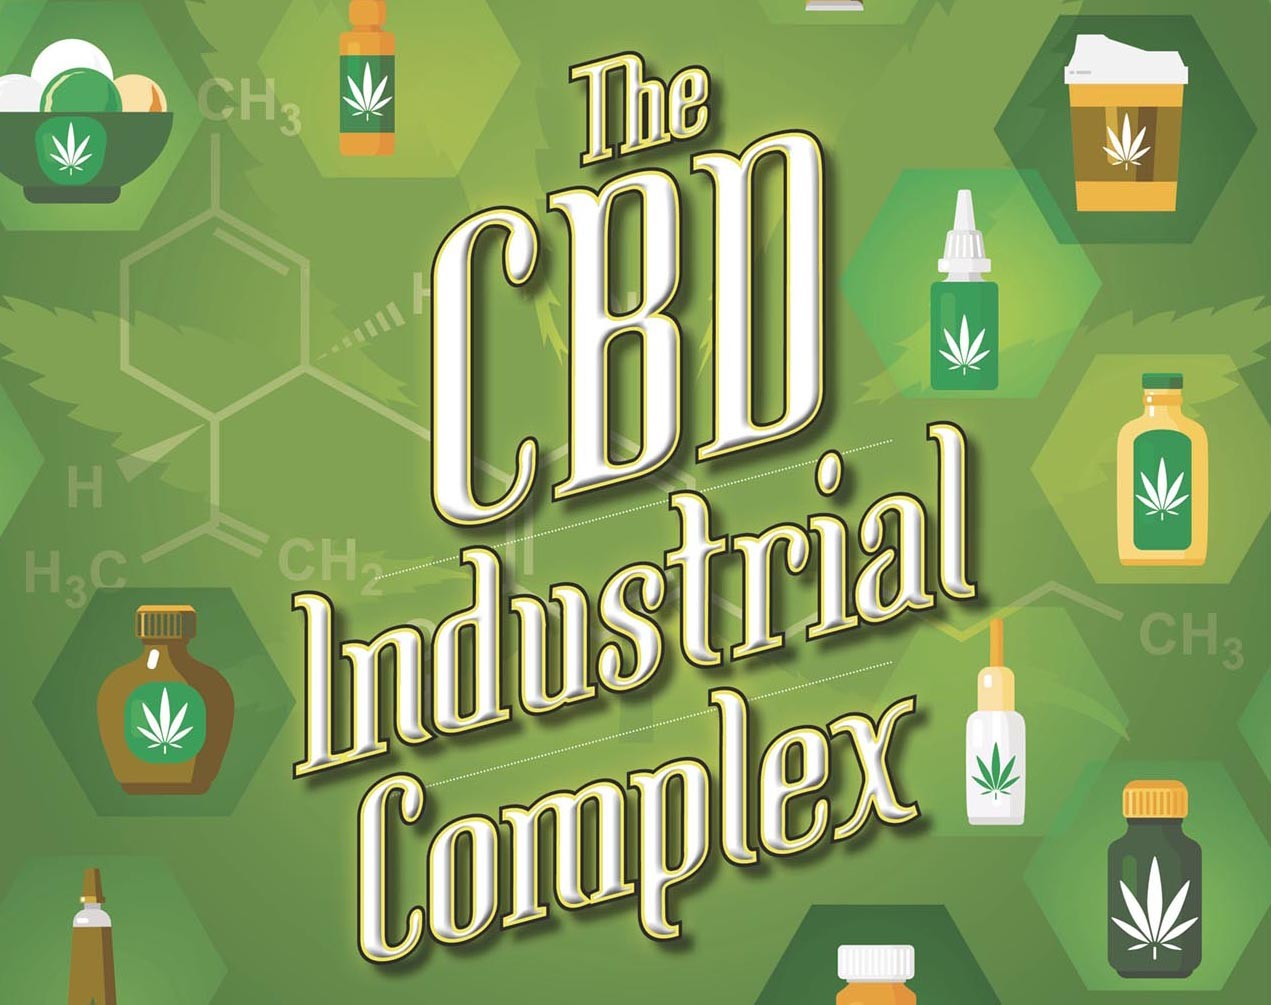 The CBD Industrial Complex | East Bay Express